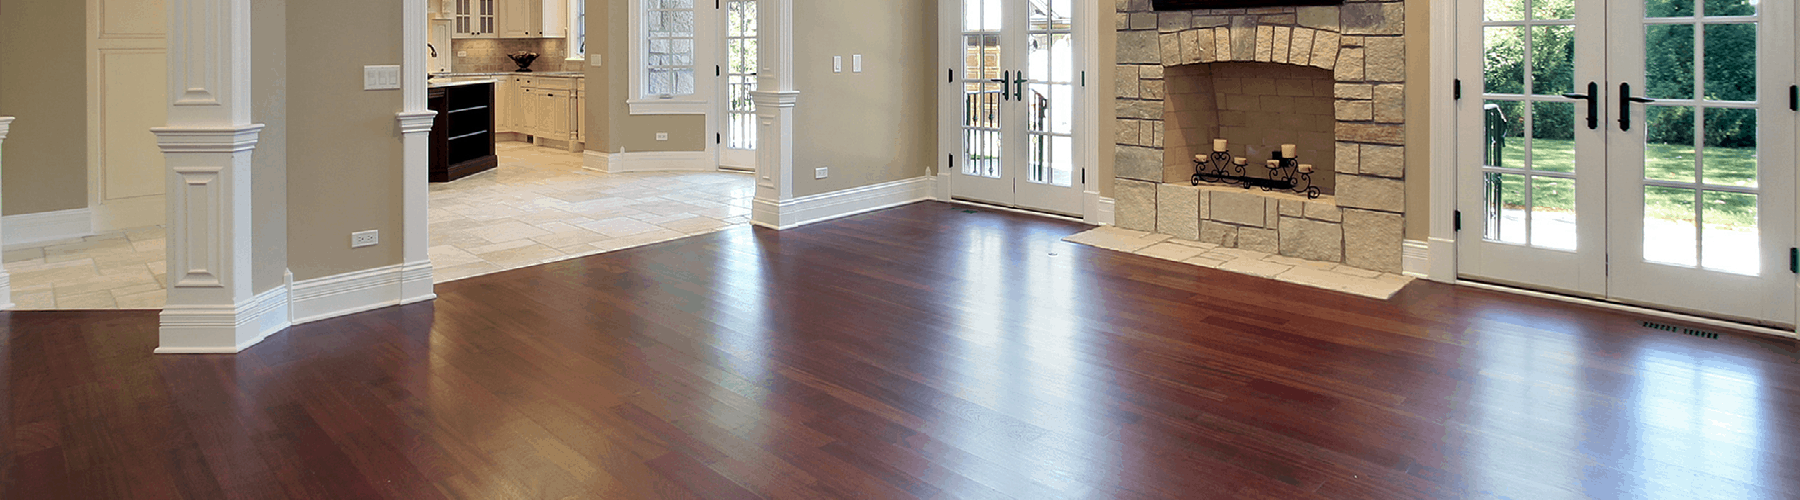 hardwood floor cleaning sacramento ca